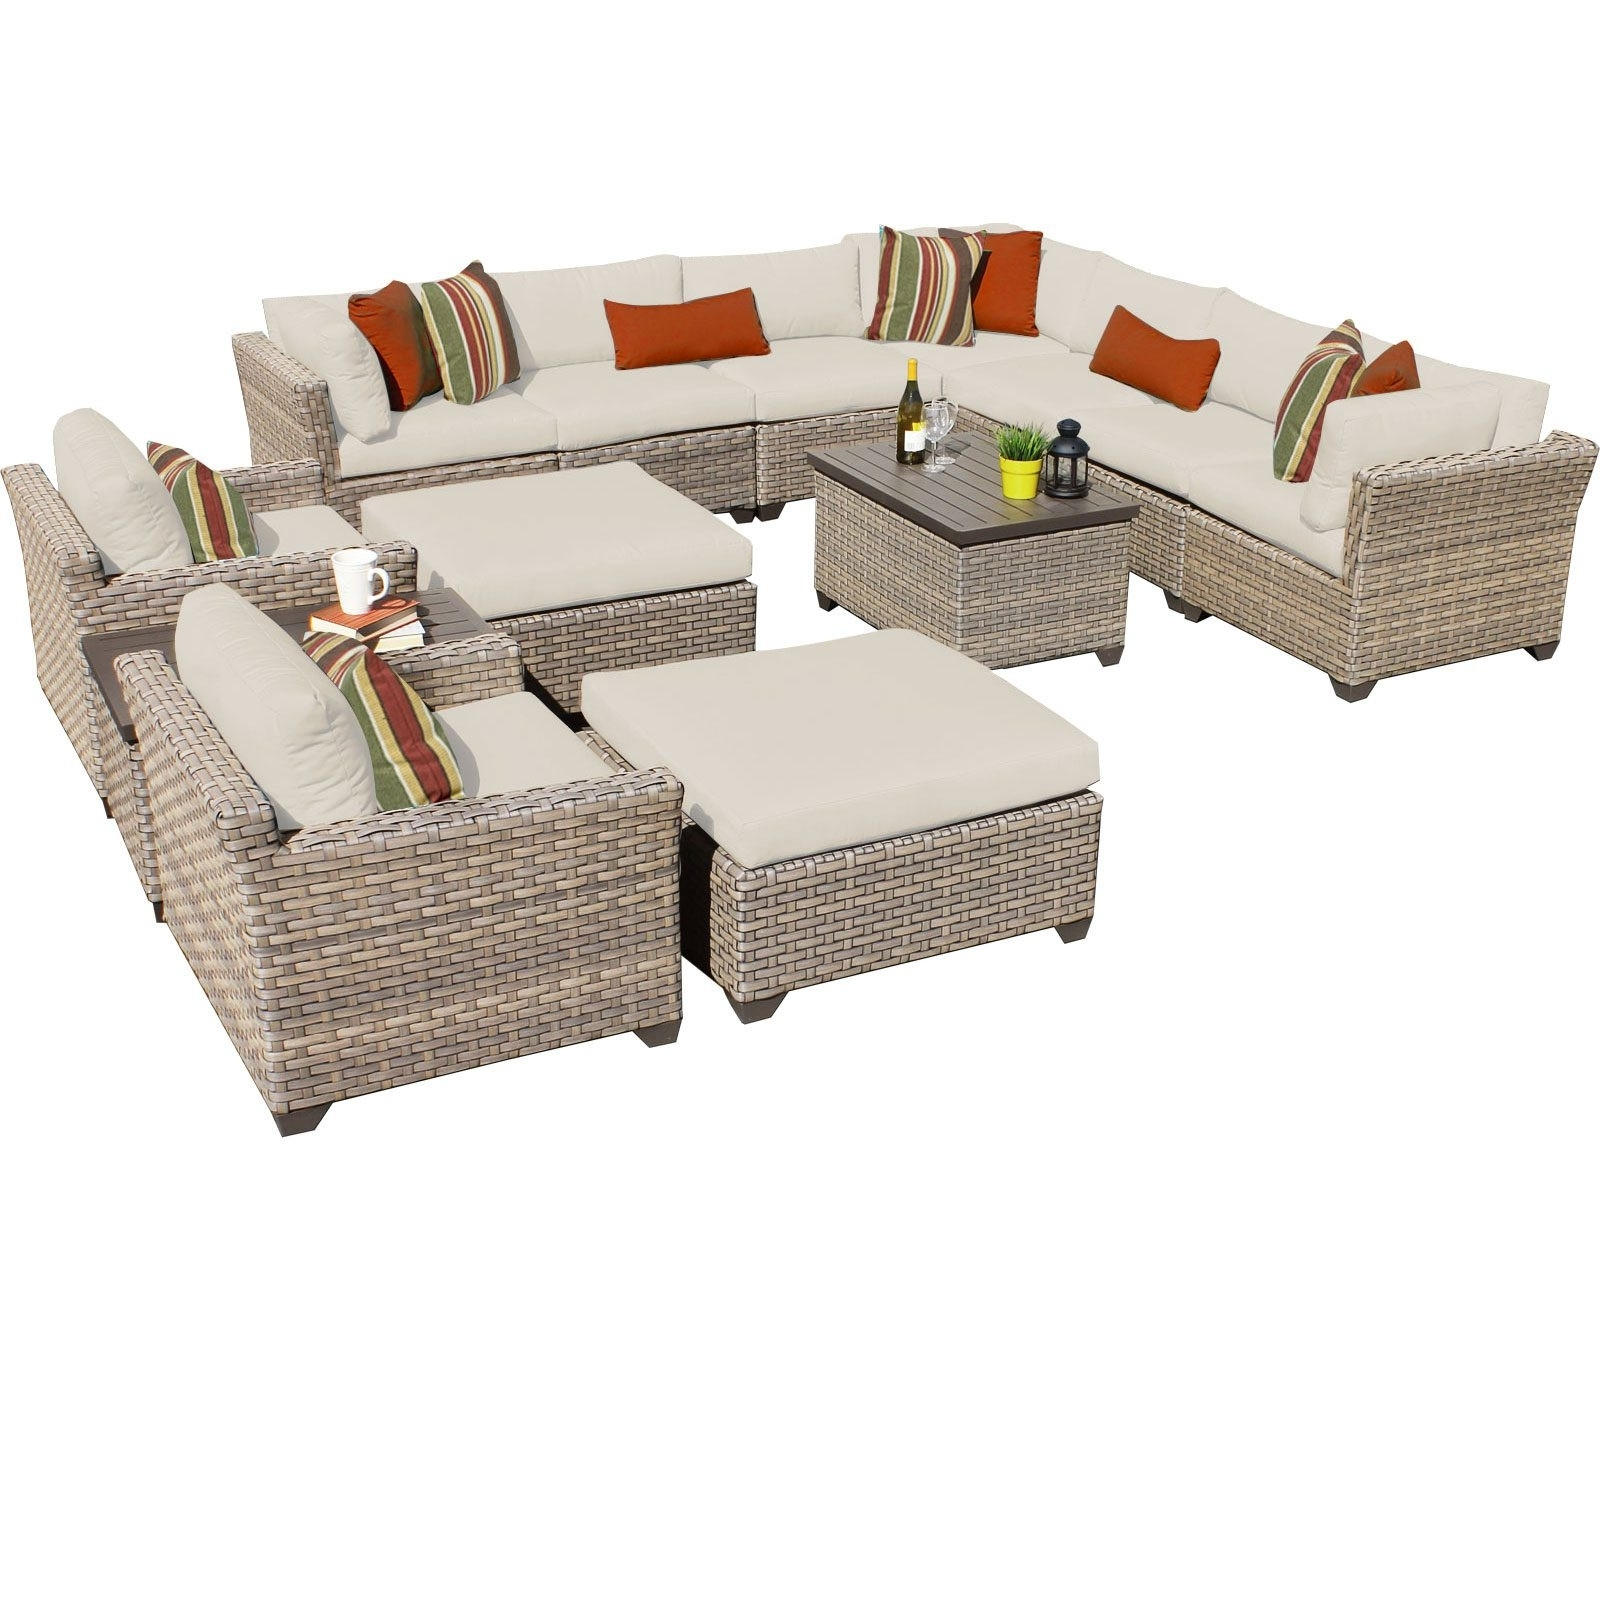 Patio Conversation Sets At Walmart Regarding Well Known 30 Luxury Walmart Patio Sets On Sale Ideas (View 11 of 15)